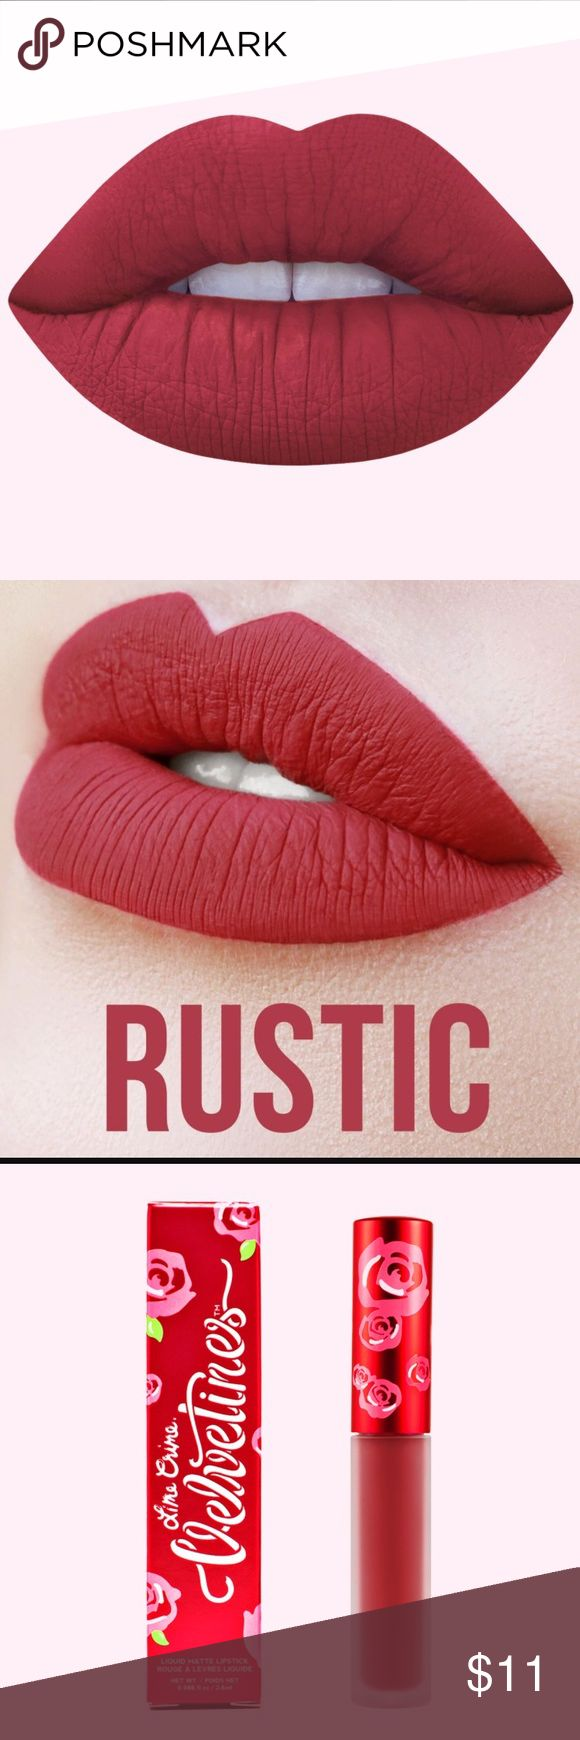 Rustic- Lime Crime Long Lasting Matted Lipstick Lime Crime Rustic Velvetine Liquid Lipstick cuz when we're with you, it feels like home~ This gorgeous rosy red shade goes on liquid smooth with the spongy doe foot applicator for flawless precision and full, opaque coverage. Plus, the signature long wearing formula dries down completely matte and touchproof for a super rich looking and comfortable finish. Lime Crime Makeup Lipstick